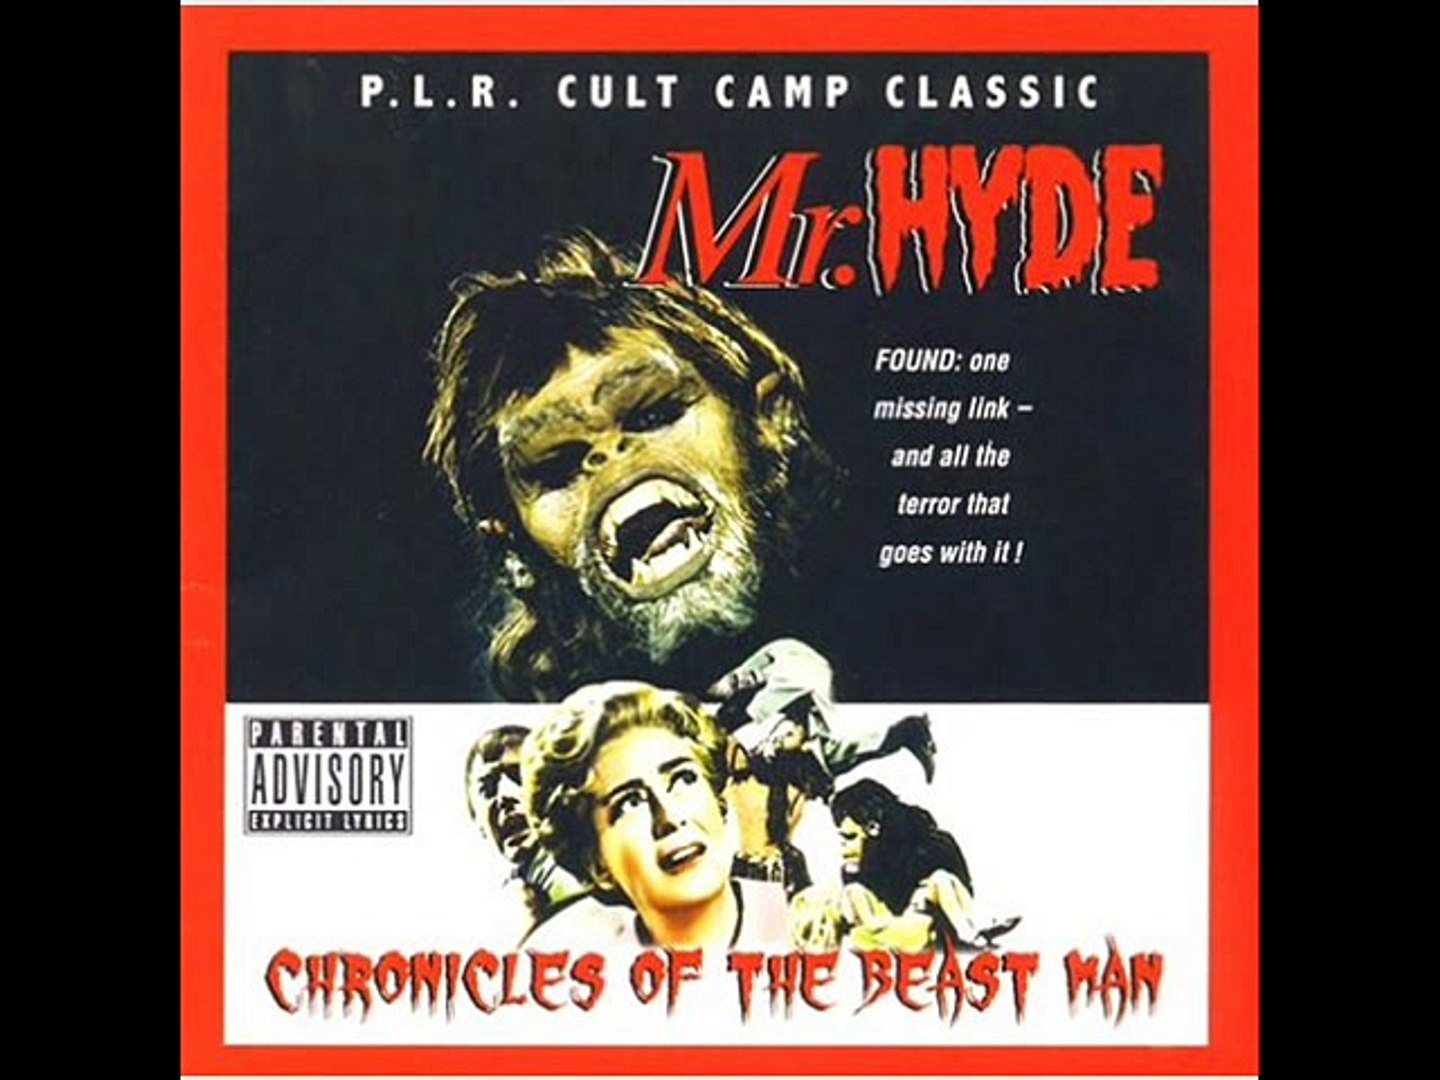 NECRO & MR. HYDE (GRUESOME TWOSOME) - BRAAAINS (off CHRONICLES OF THE BEAST MAN)